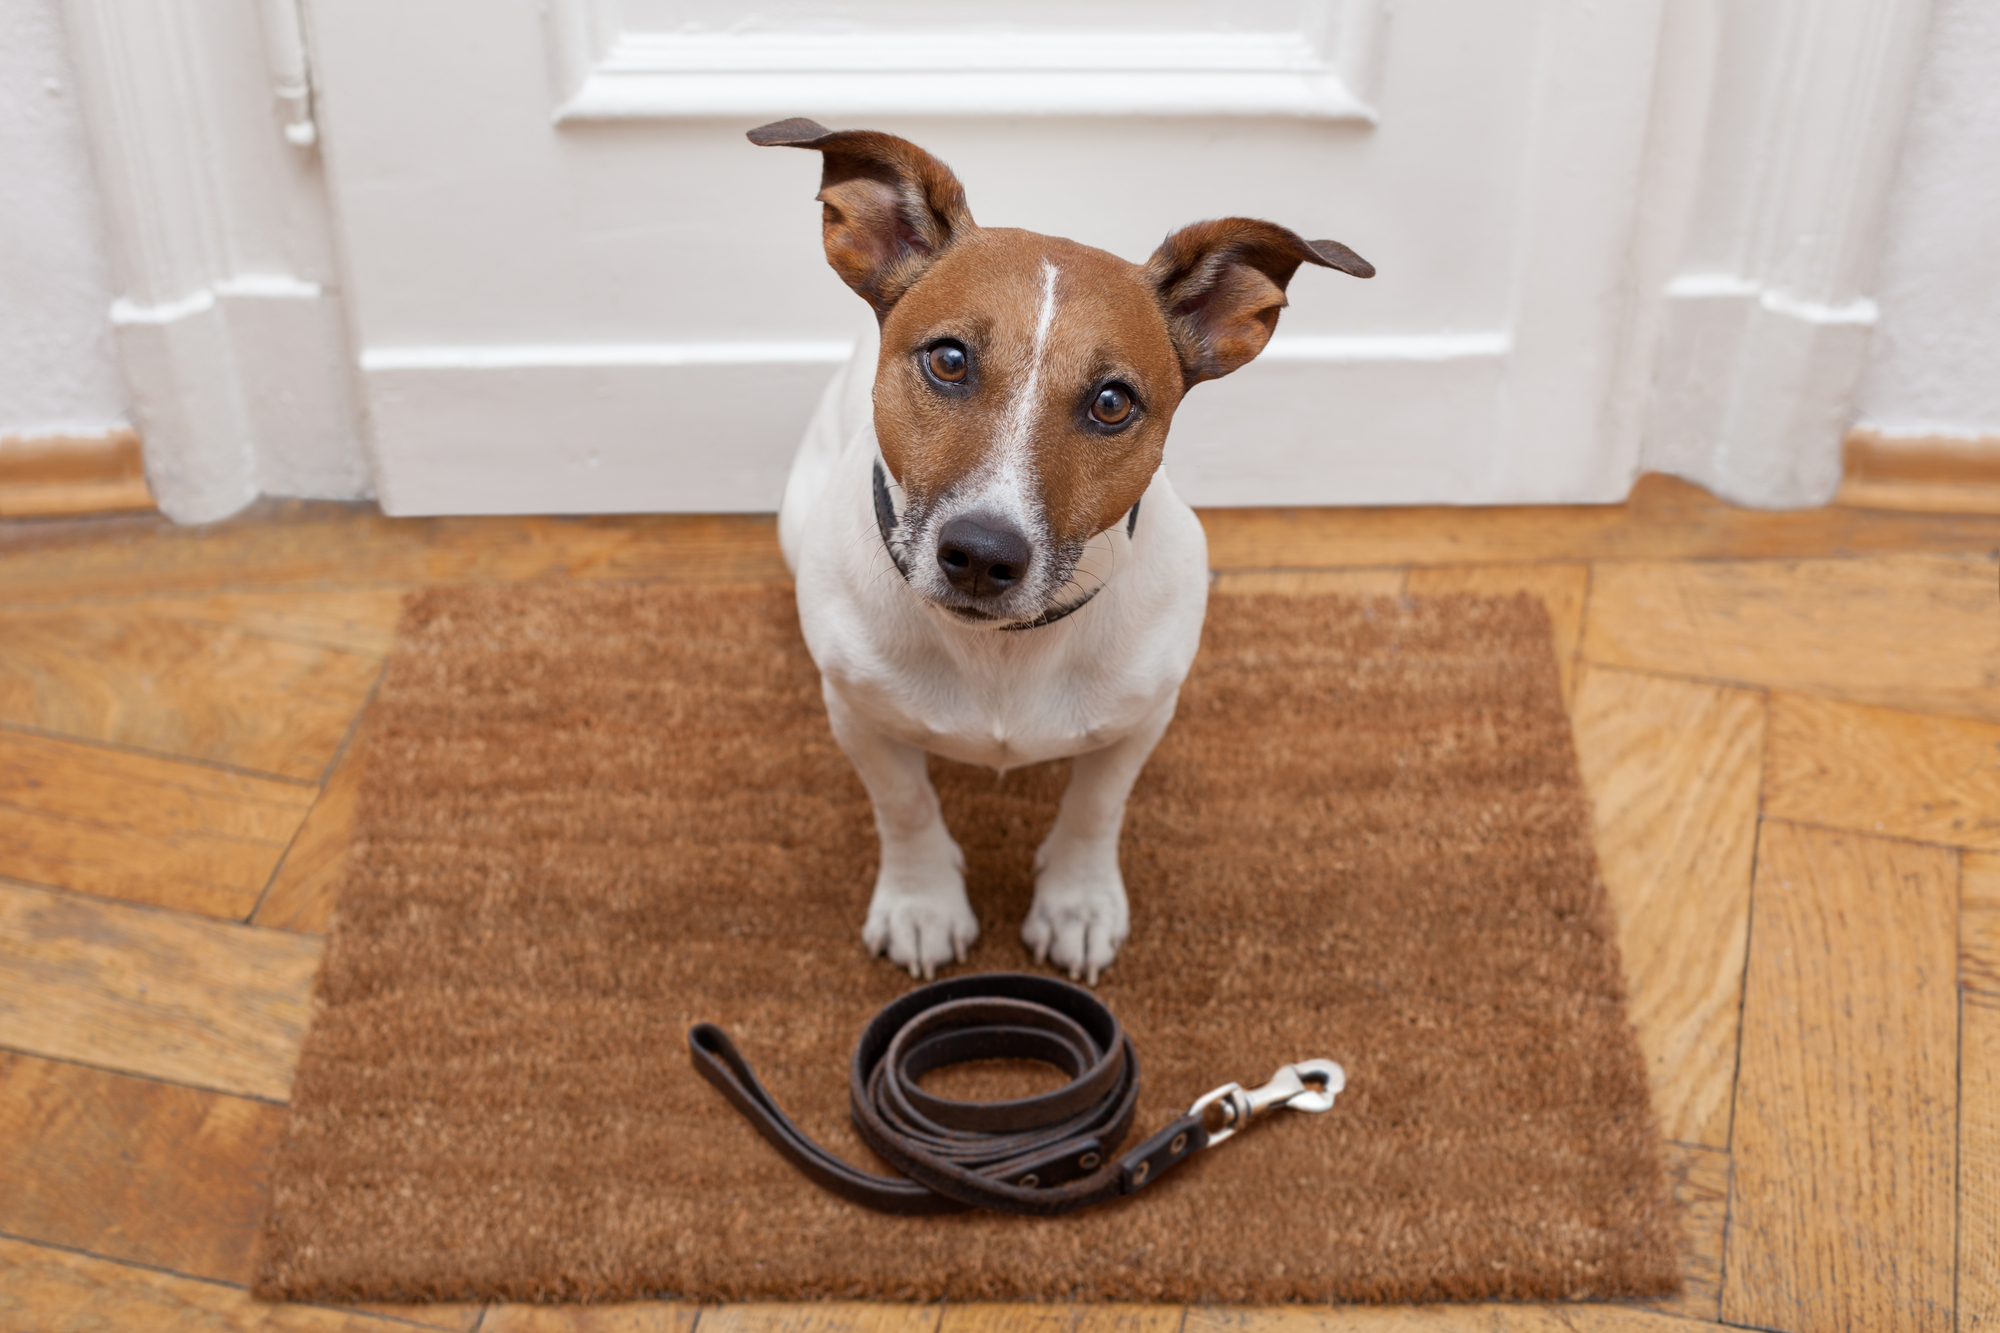 Pet Jack Russell waiting for a walk